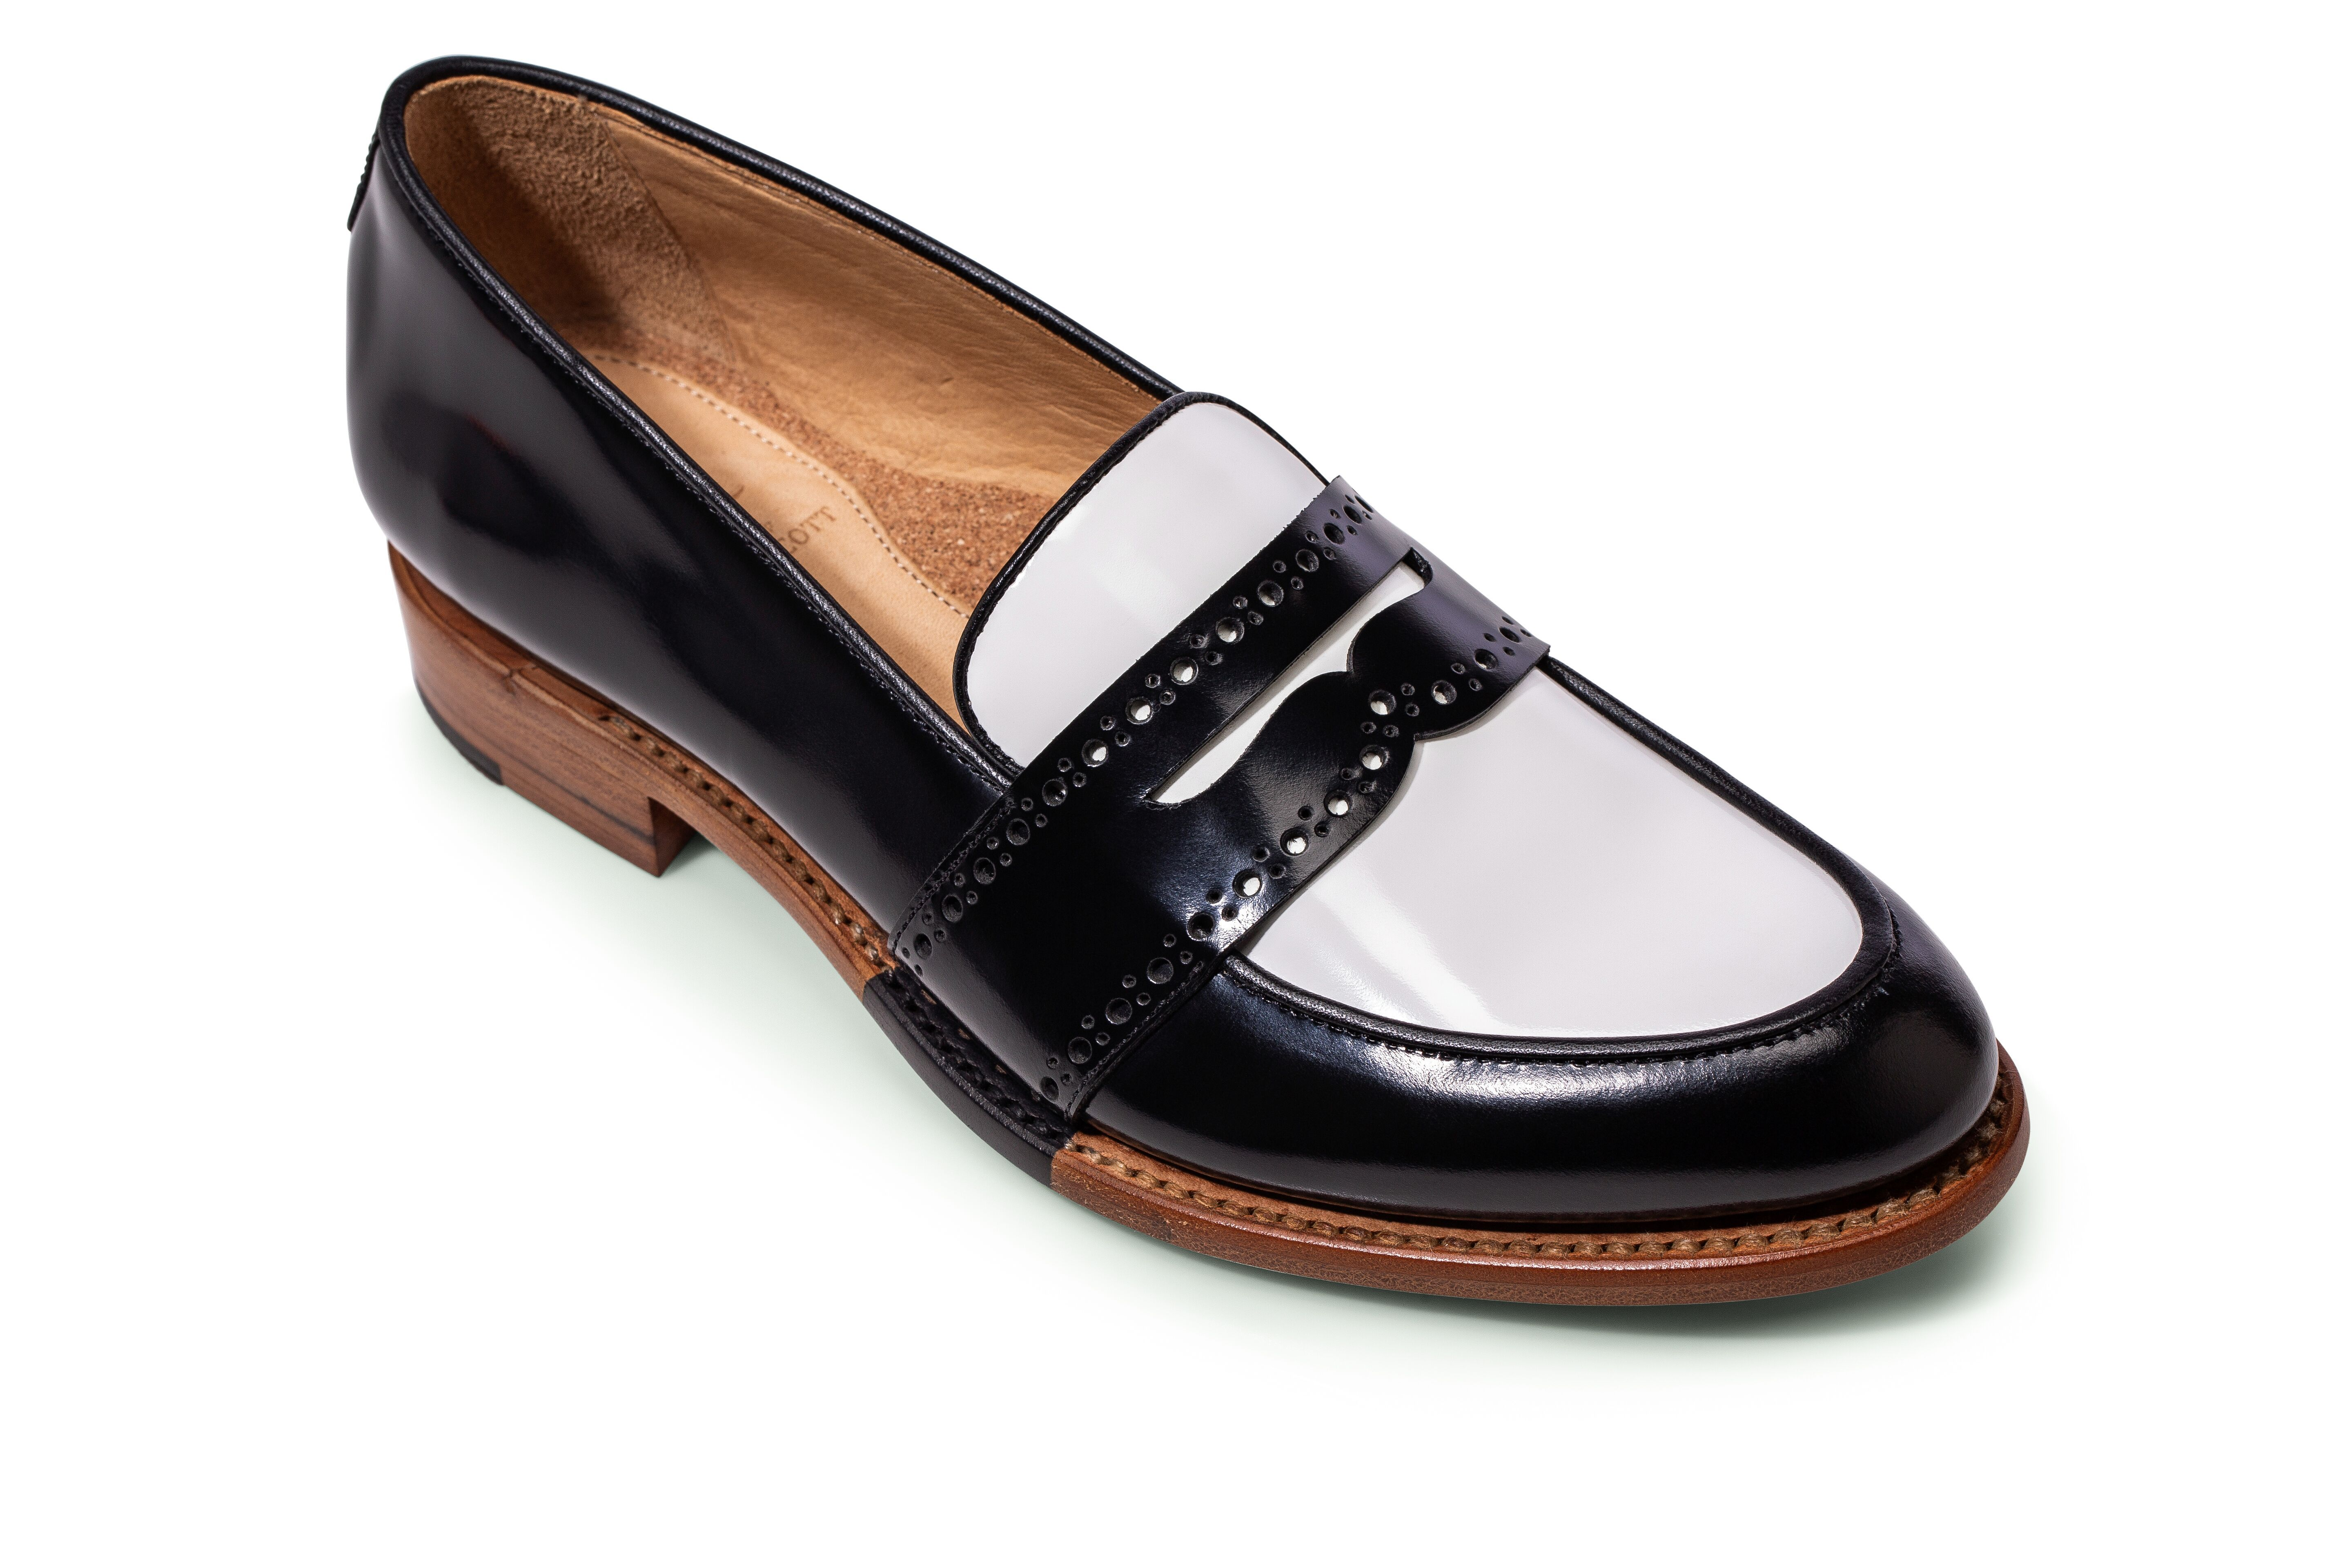 Women S Black And White Italian Leather Loafer Leather Loafers Women Womens Penny Loafers Loafers [ 3840 x 5760 Pixel ]